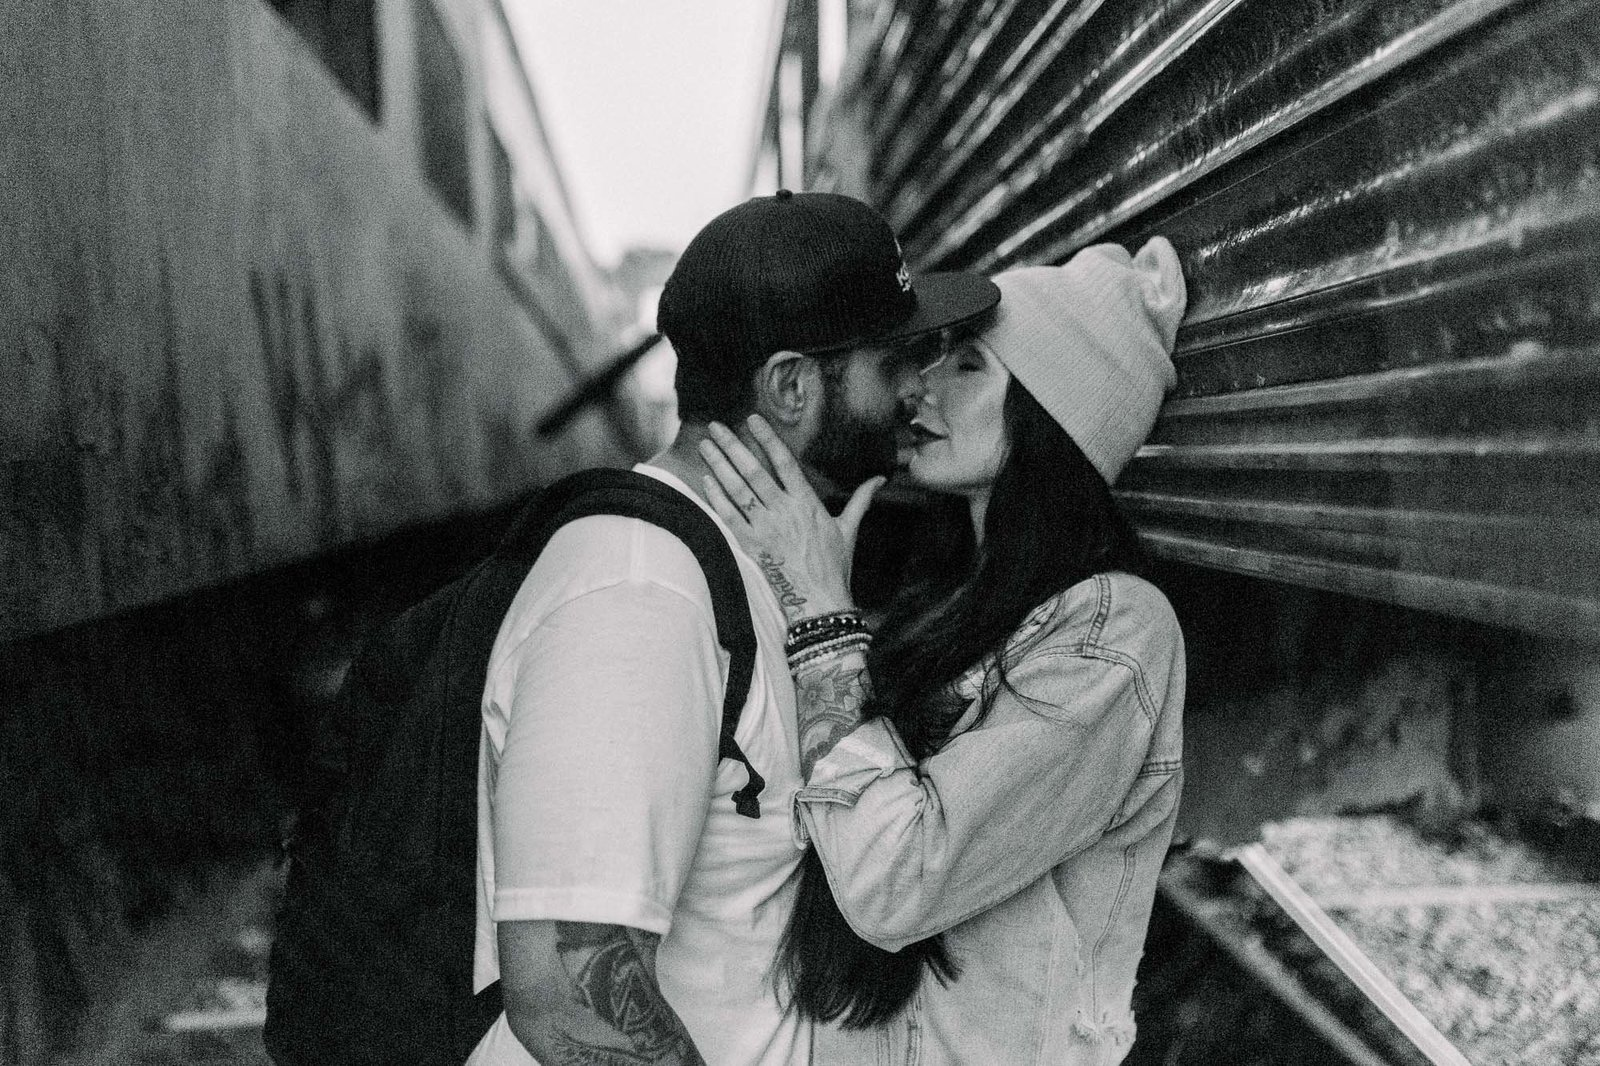 Couple kissing in between train cars captured by Staci Addison Photography